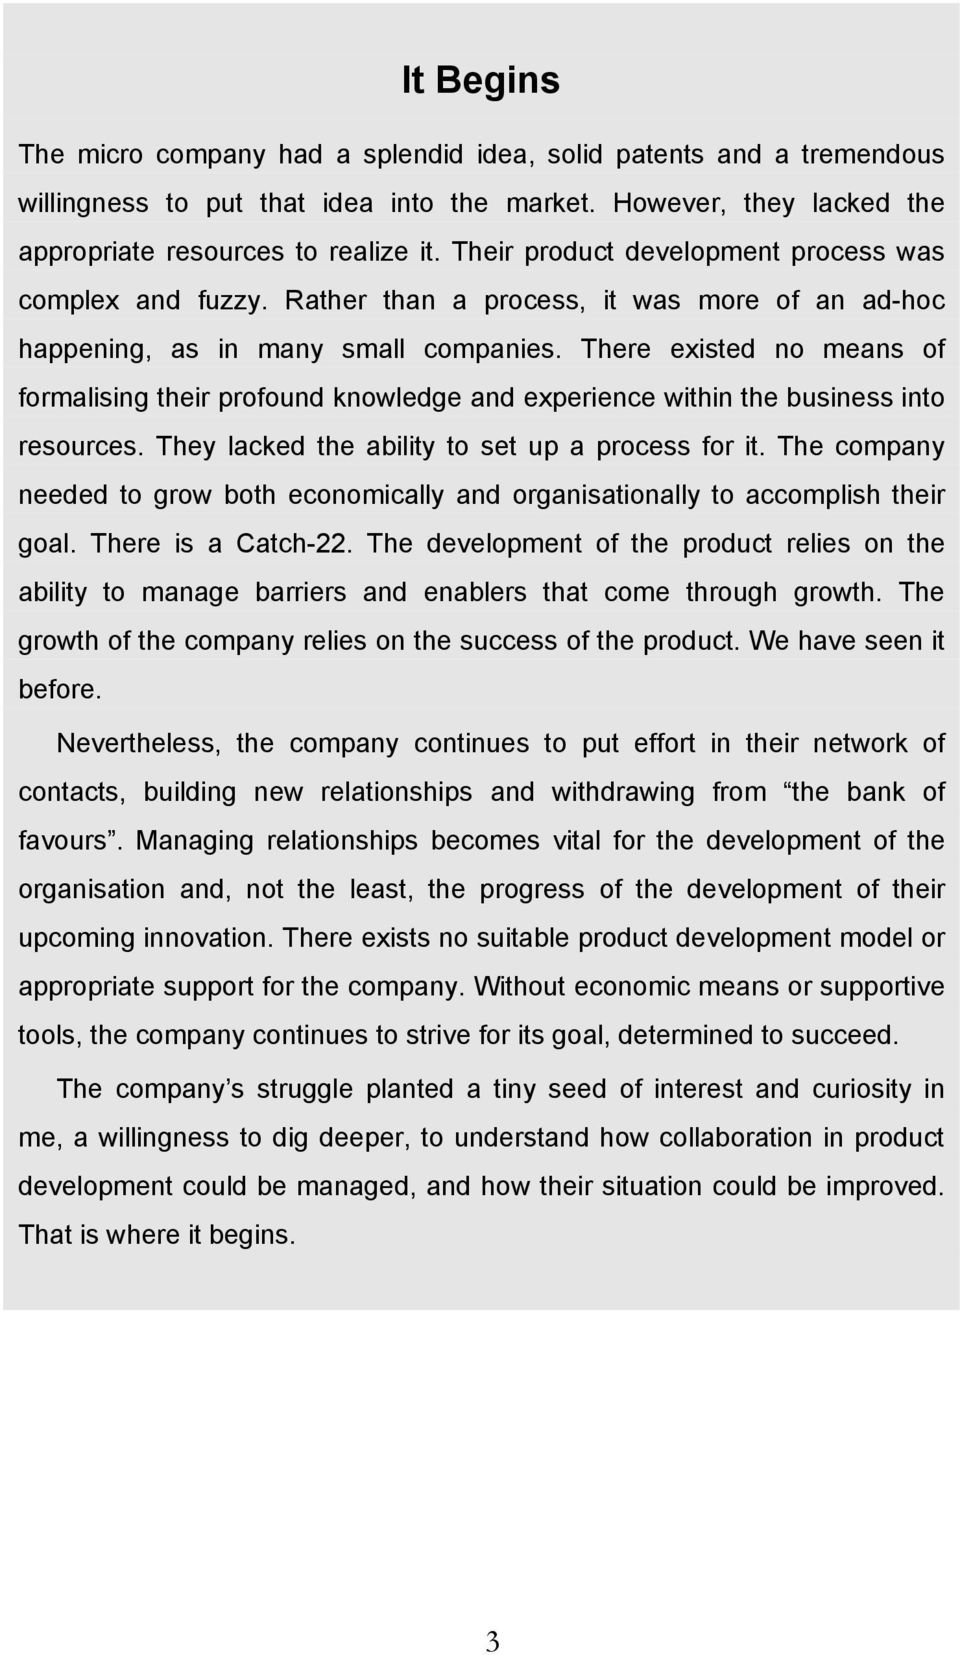 There existed no means of formalising their profound knowledge and experience within the business into resources. They lacked the ability to set up a process for it.